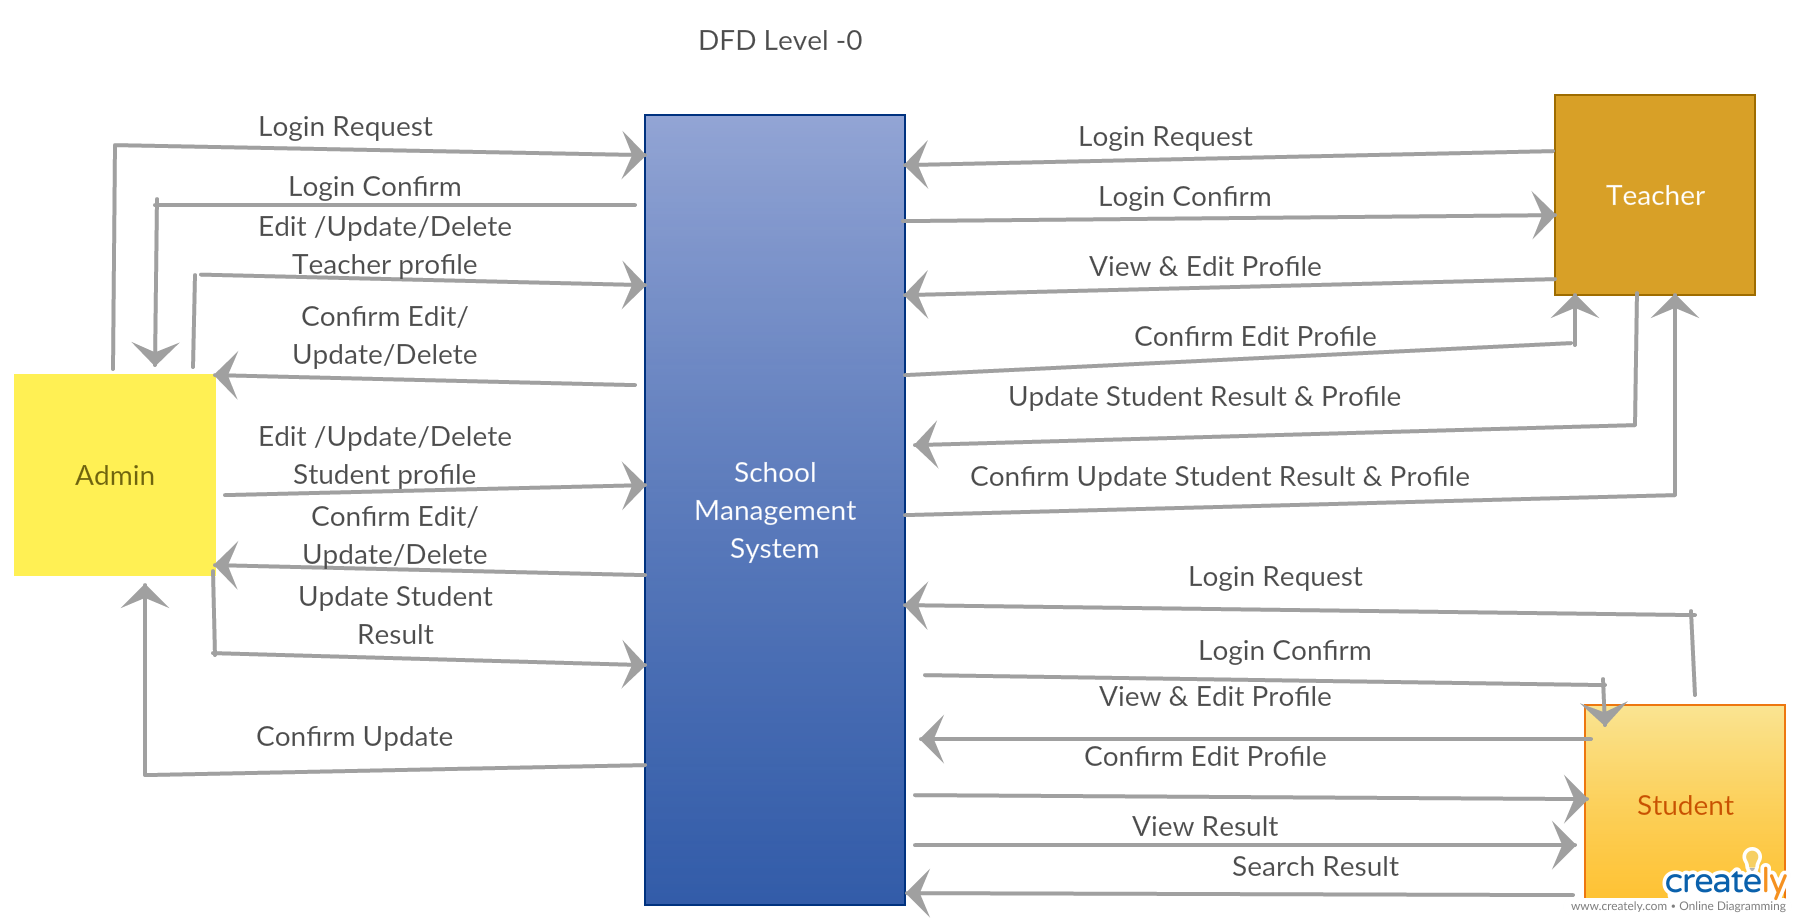 hight resolution of dfd level 0 of school management system you can edit this template and create your own diagram creately diagrams can be exported and added to word